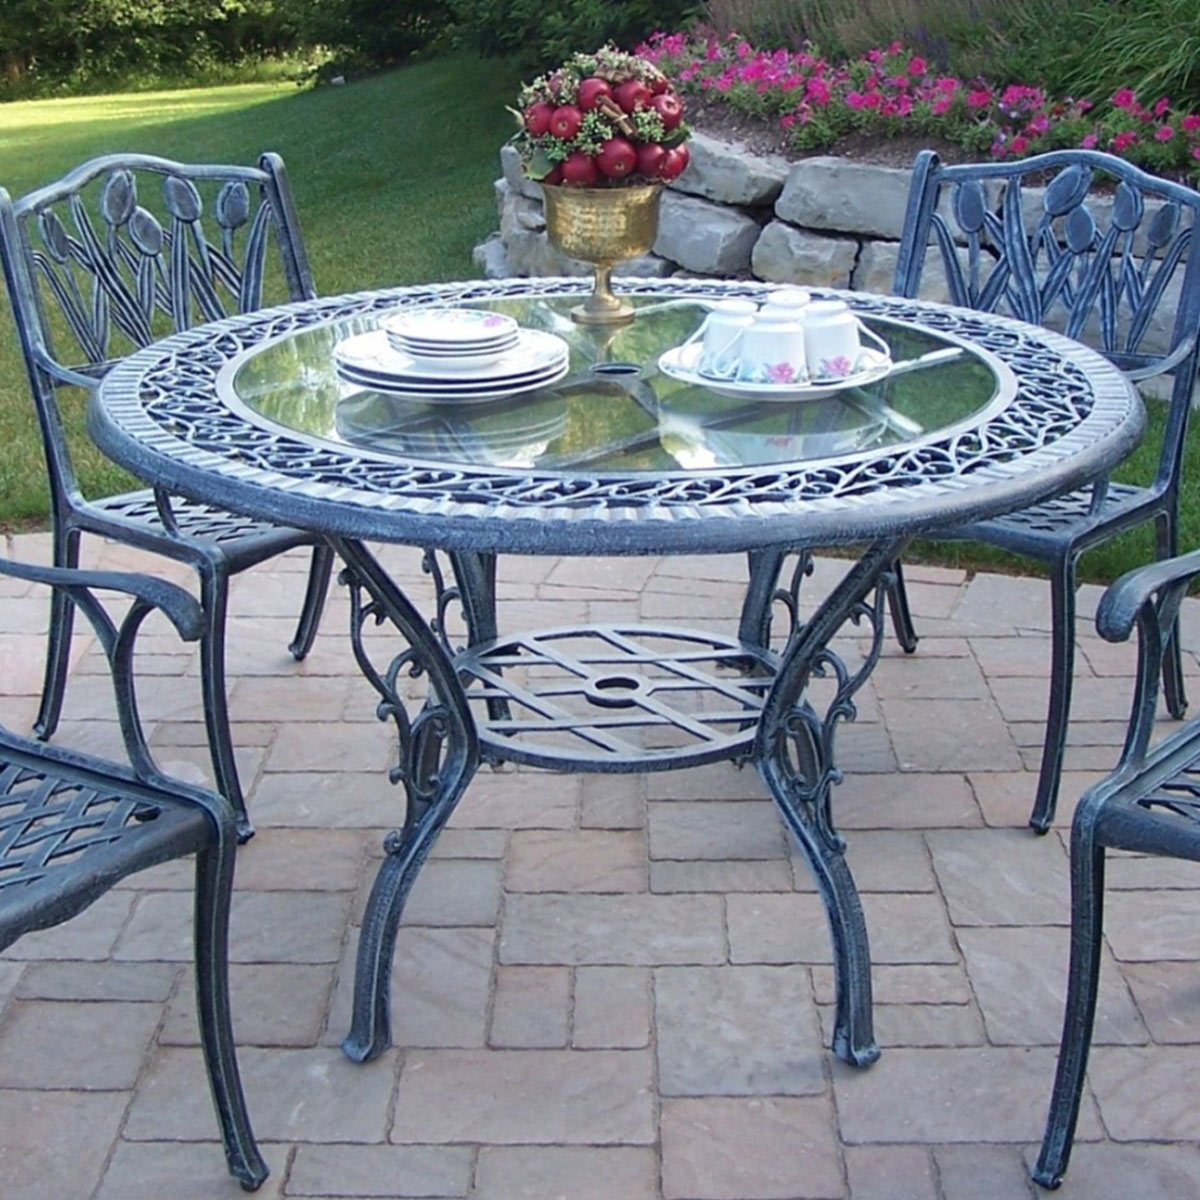 oakland living cast aluminum 48 round patio dining table with tempered glass top in antique. Black Bedroom Furniture Sets. Home Design Ideas